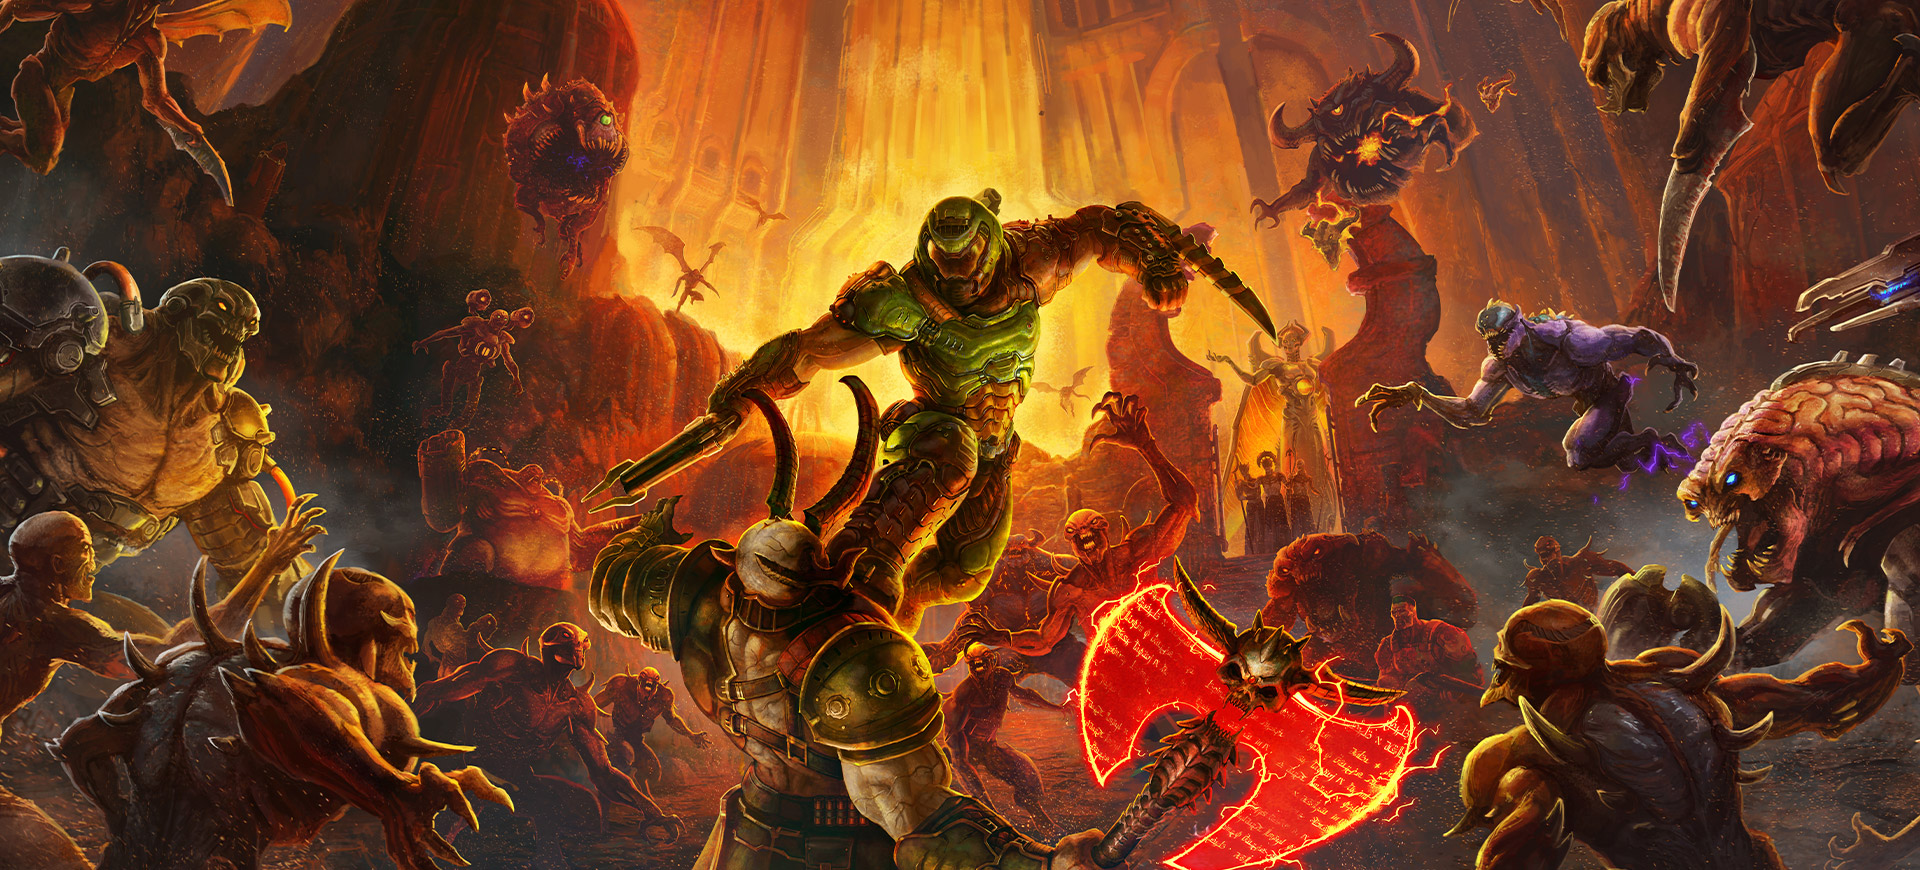 Google Stadia shows serious potential with Doom Eternal, but I'm far from all-in screenshot